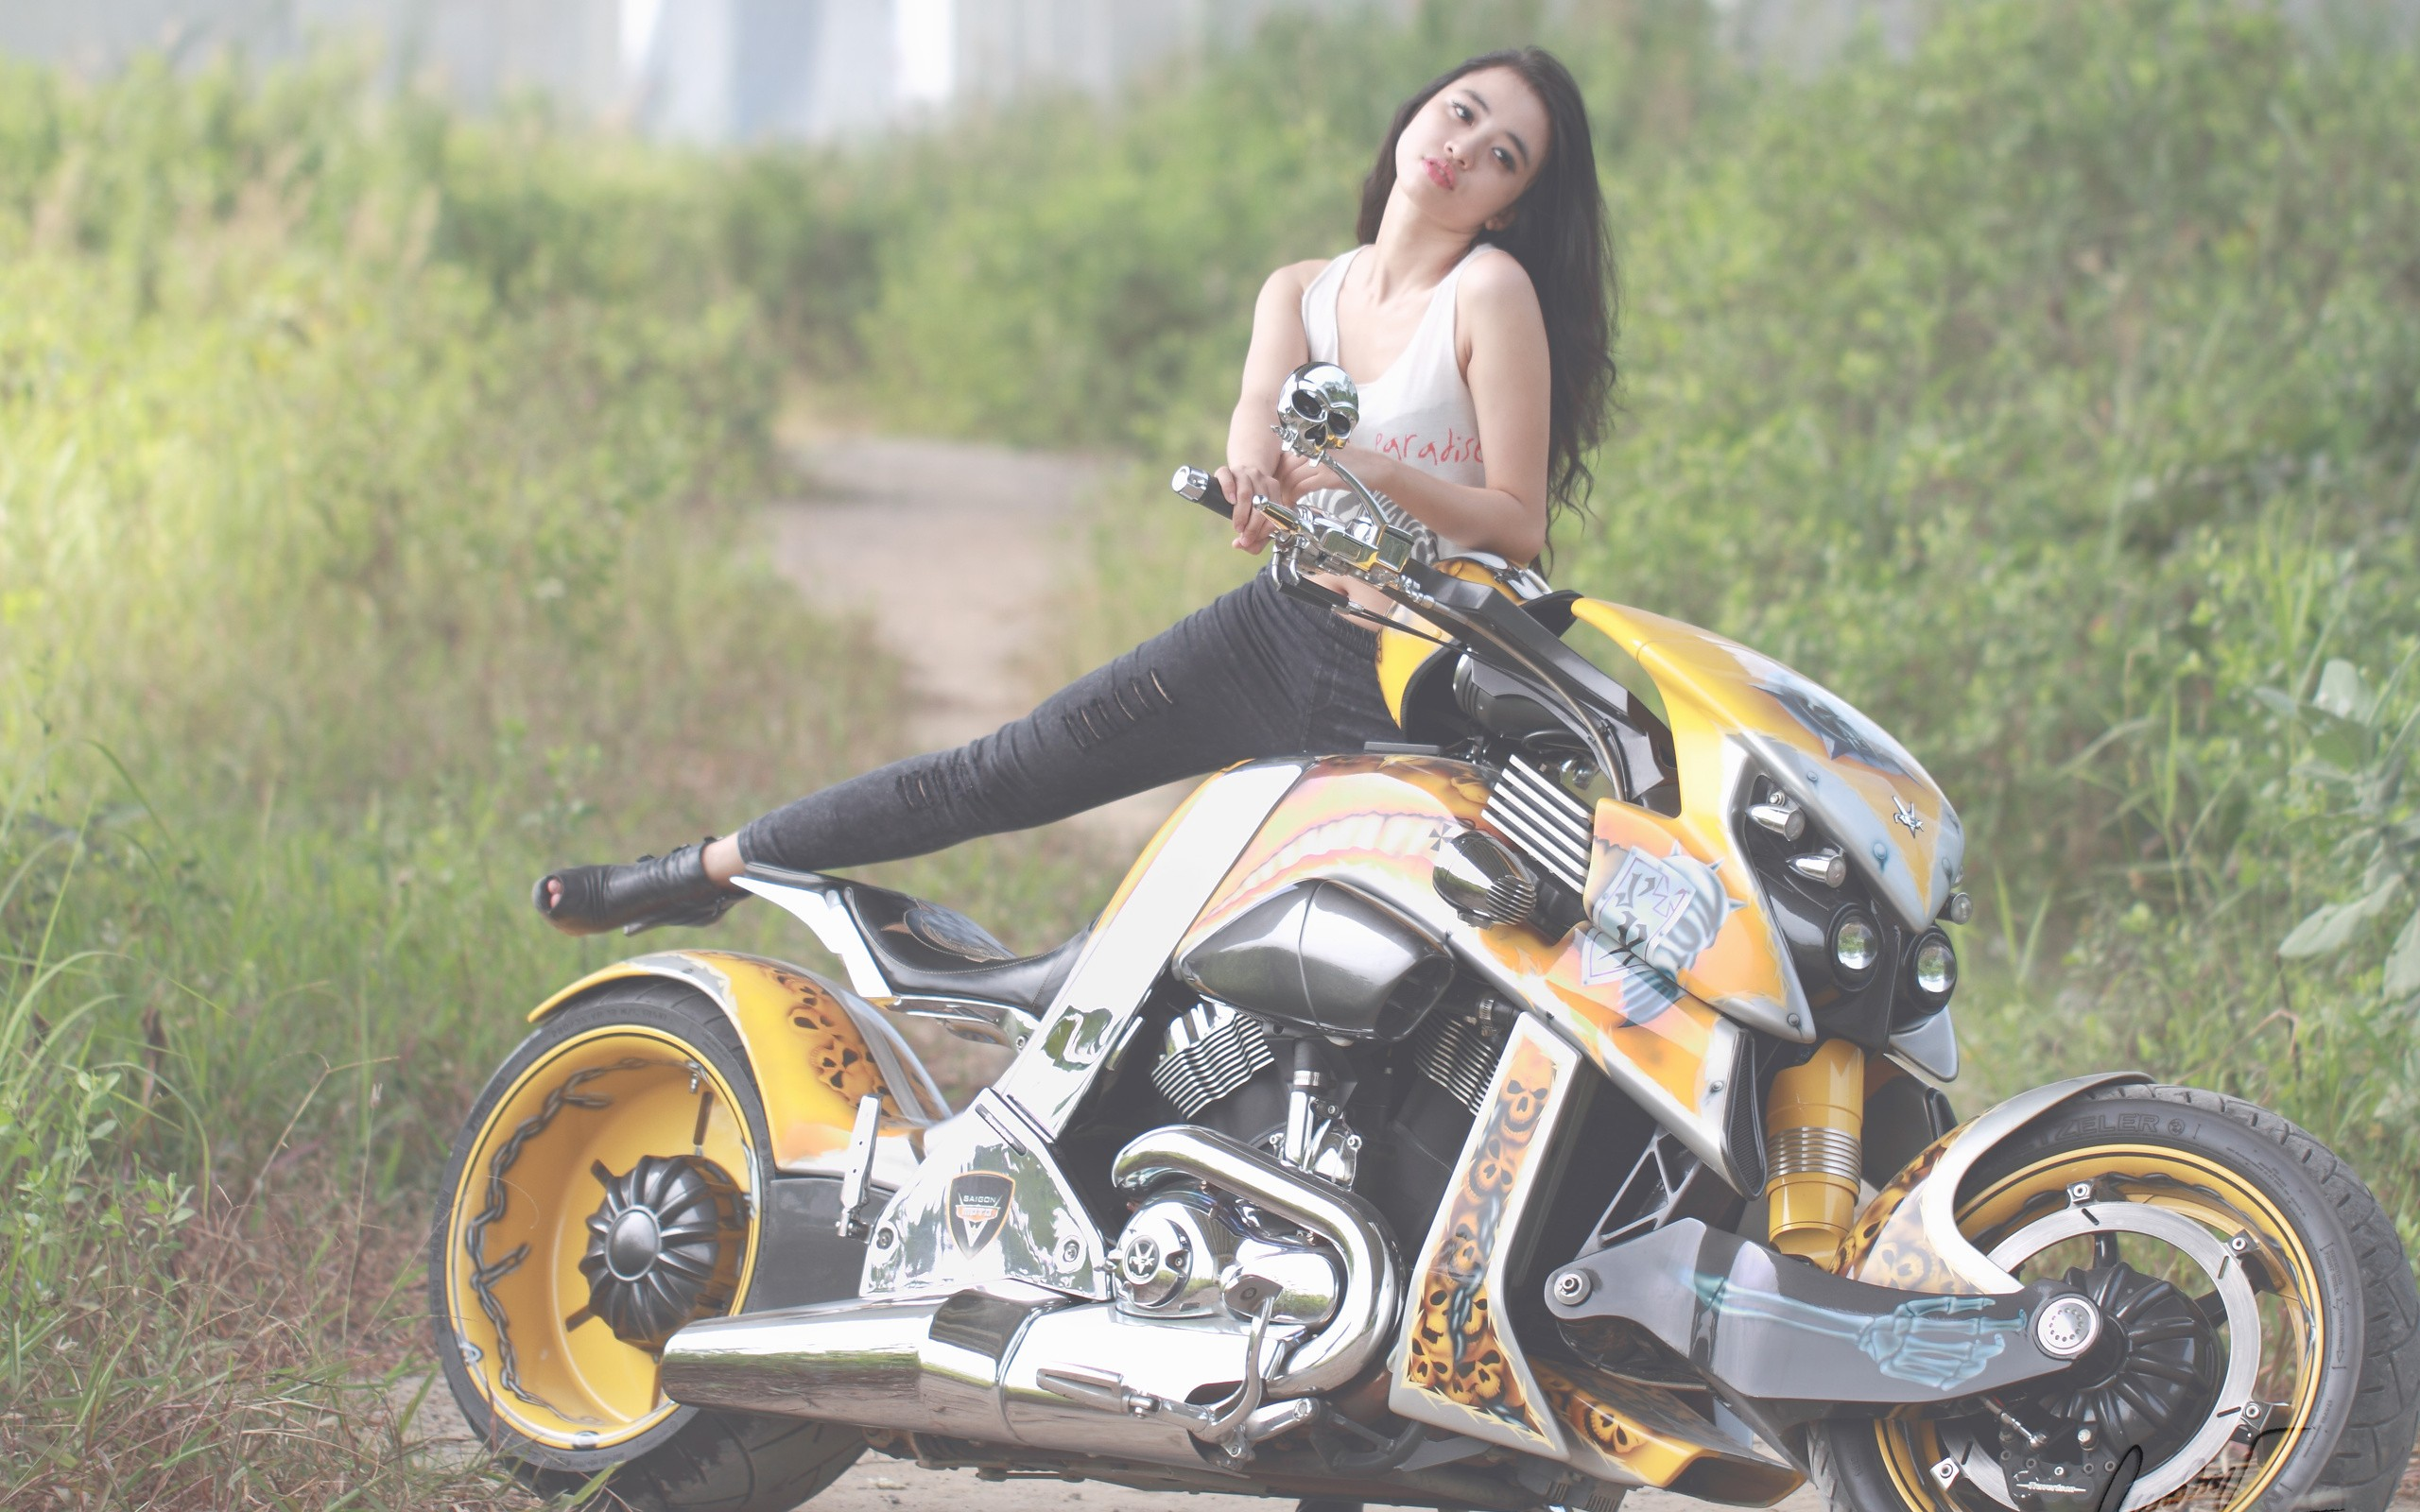 Girls & Motorcycles Full HD Wallpaper and Background Image